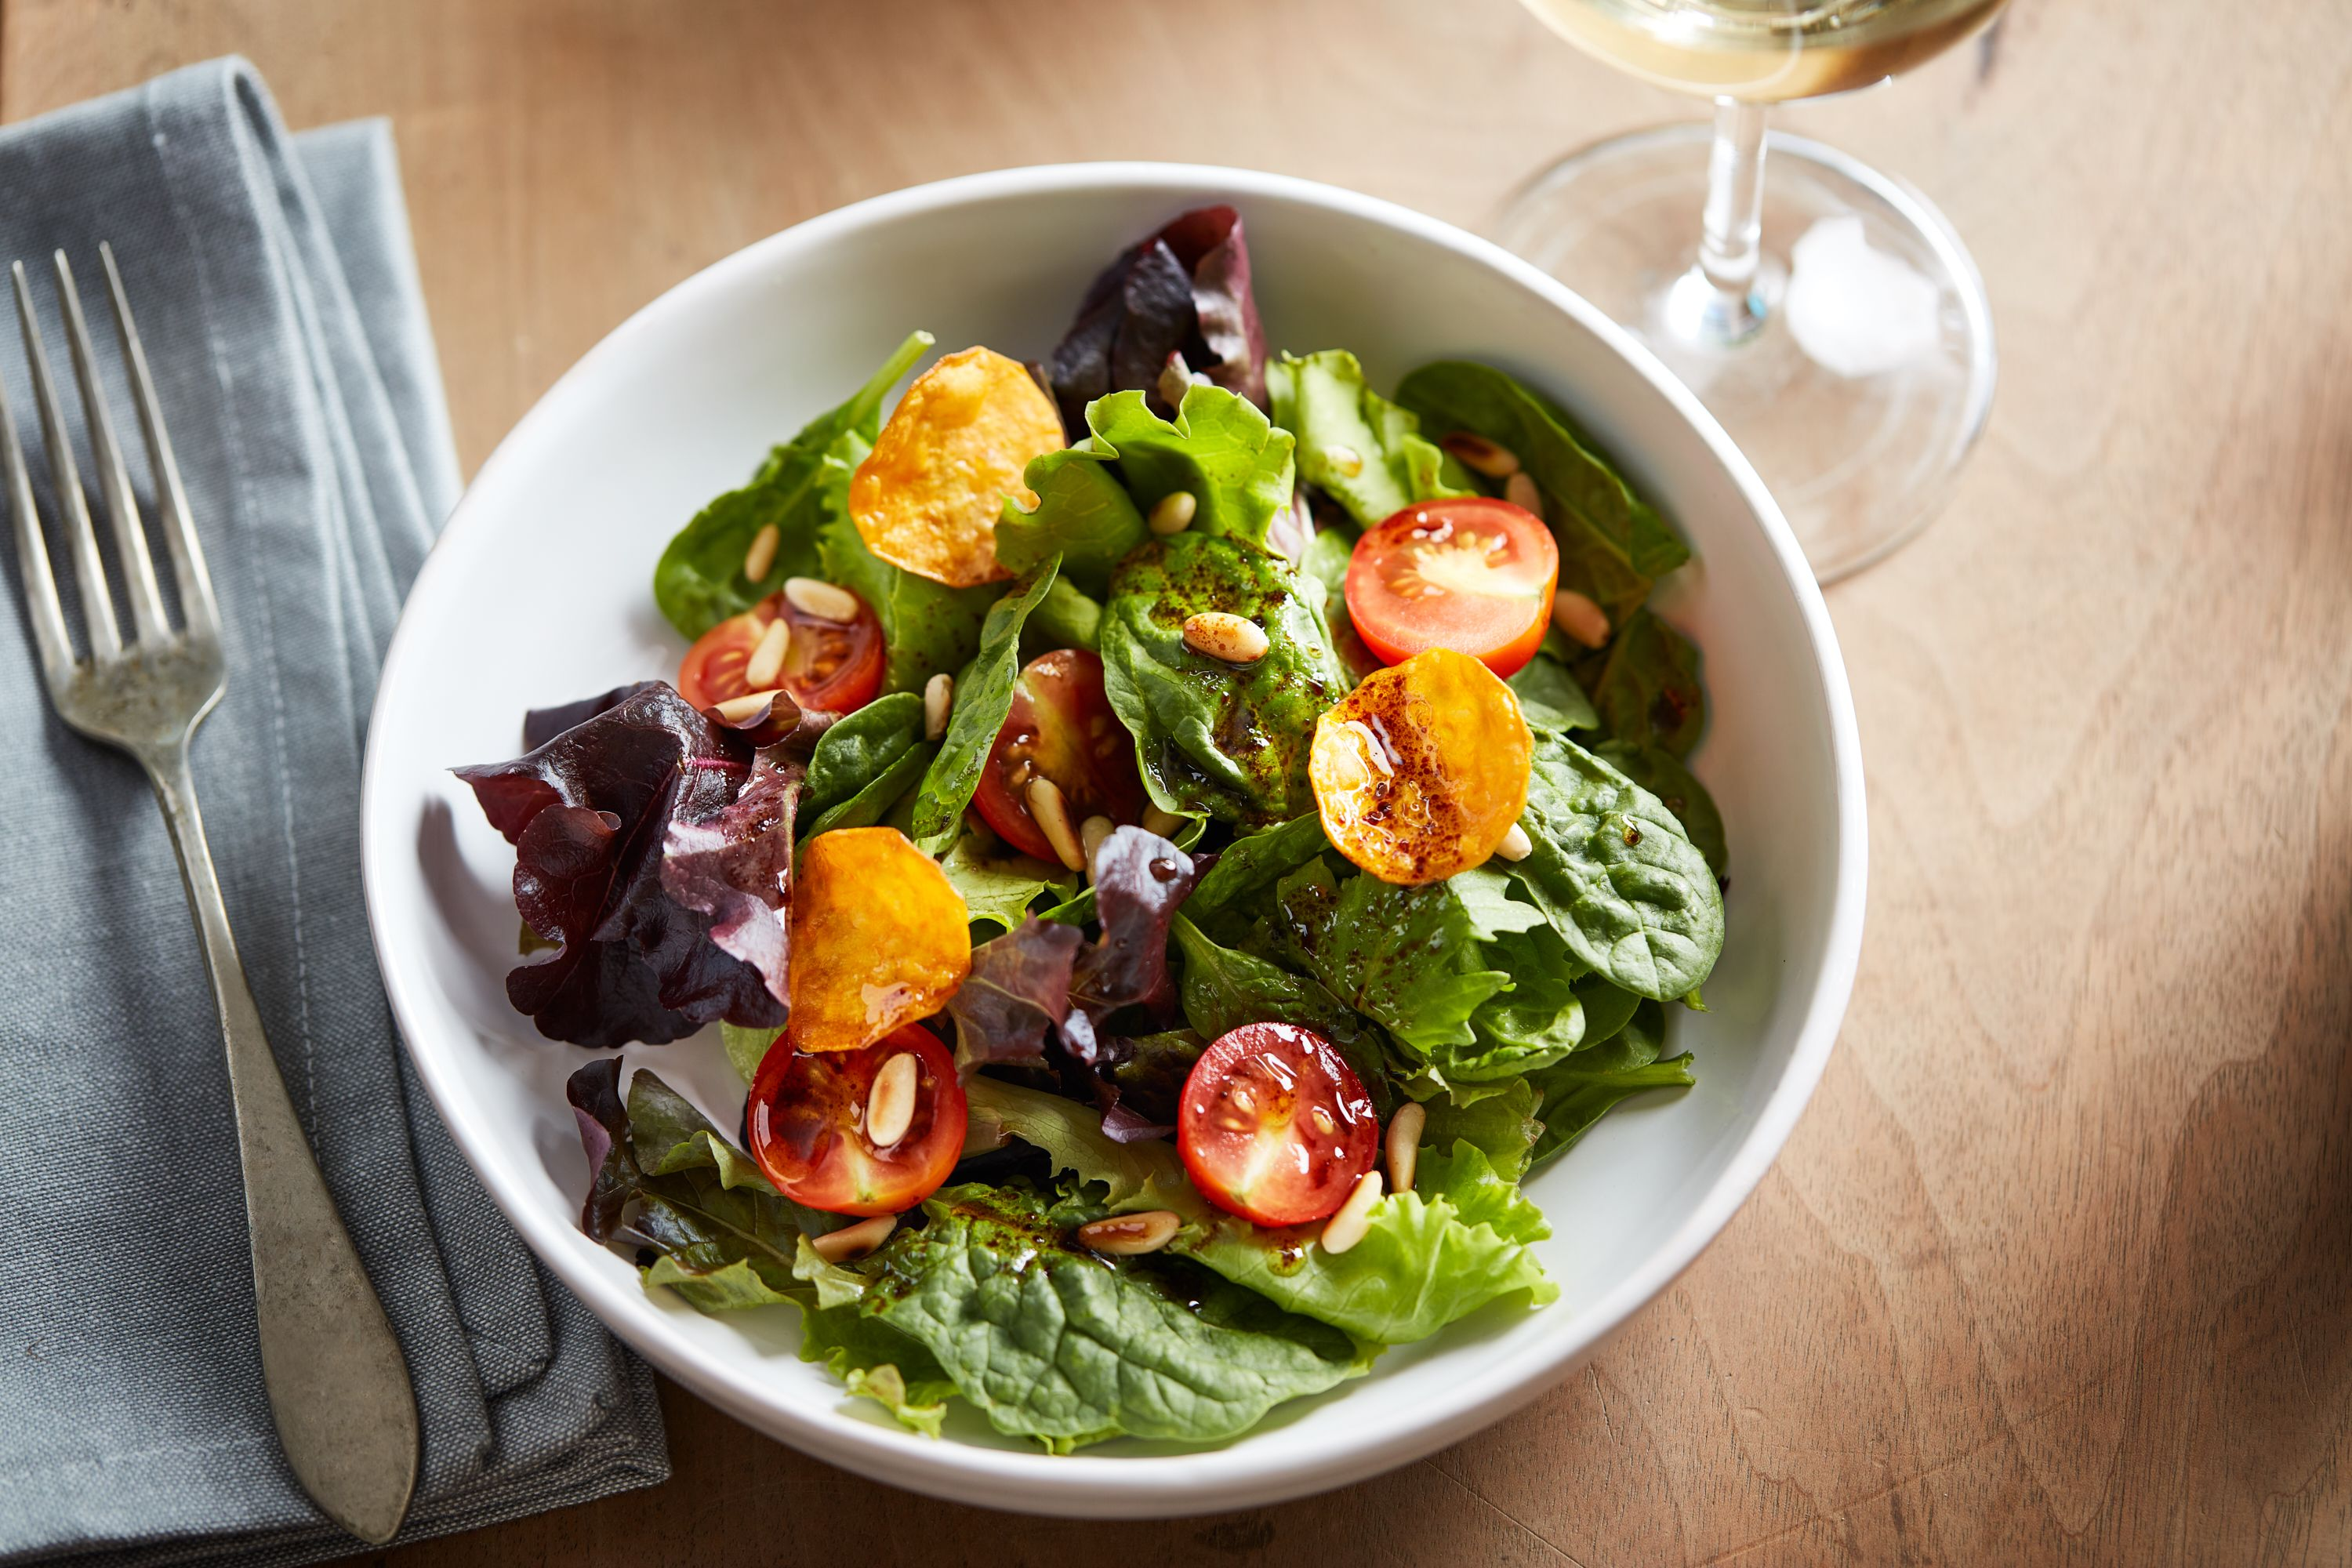 Spinach Salad with Sweet Potato Chips and Pine Nuts